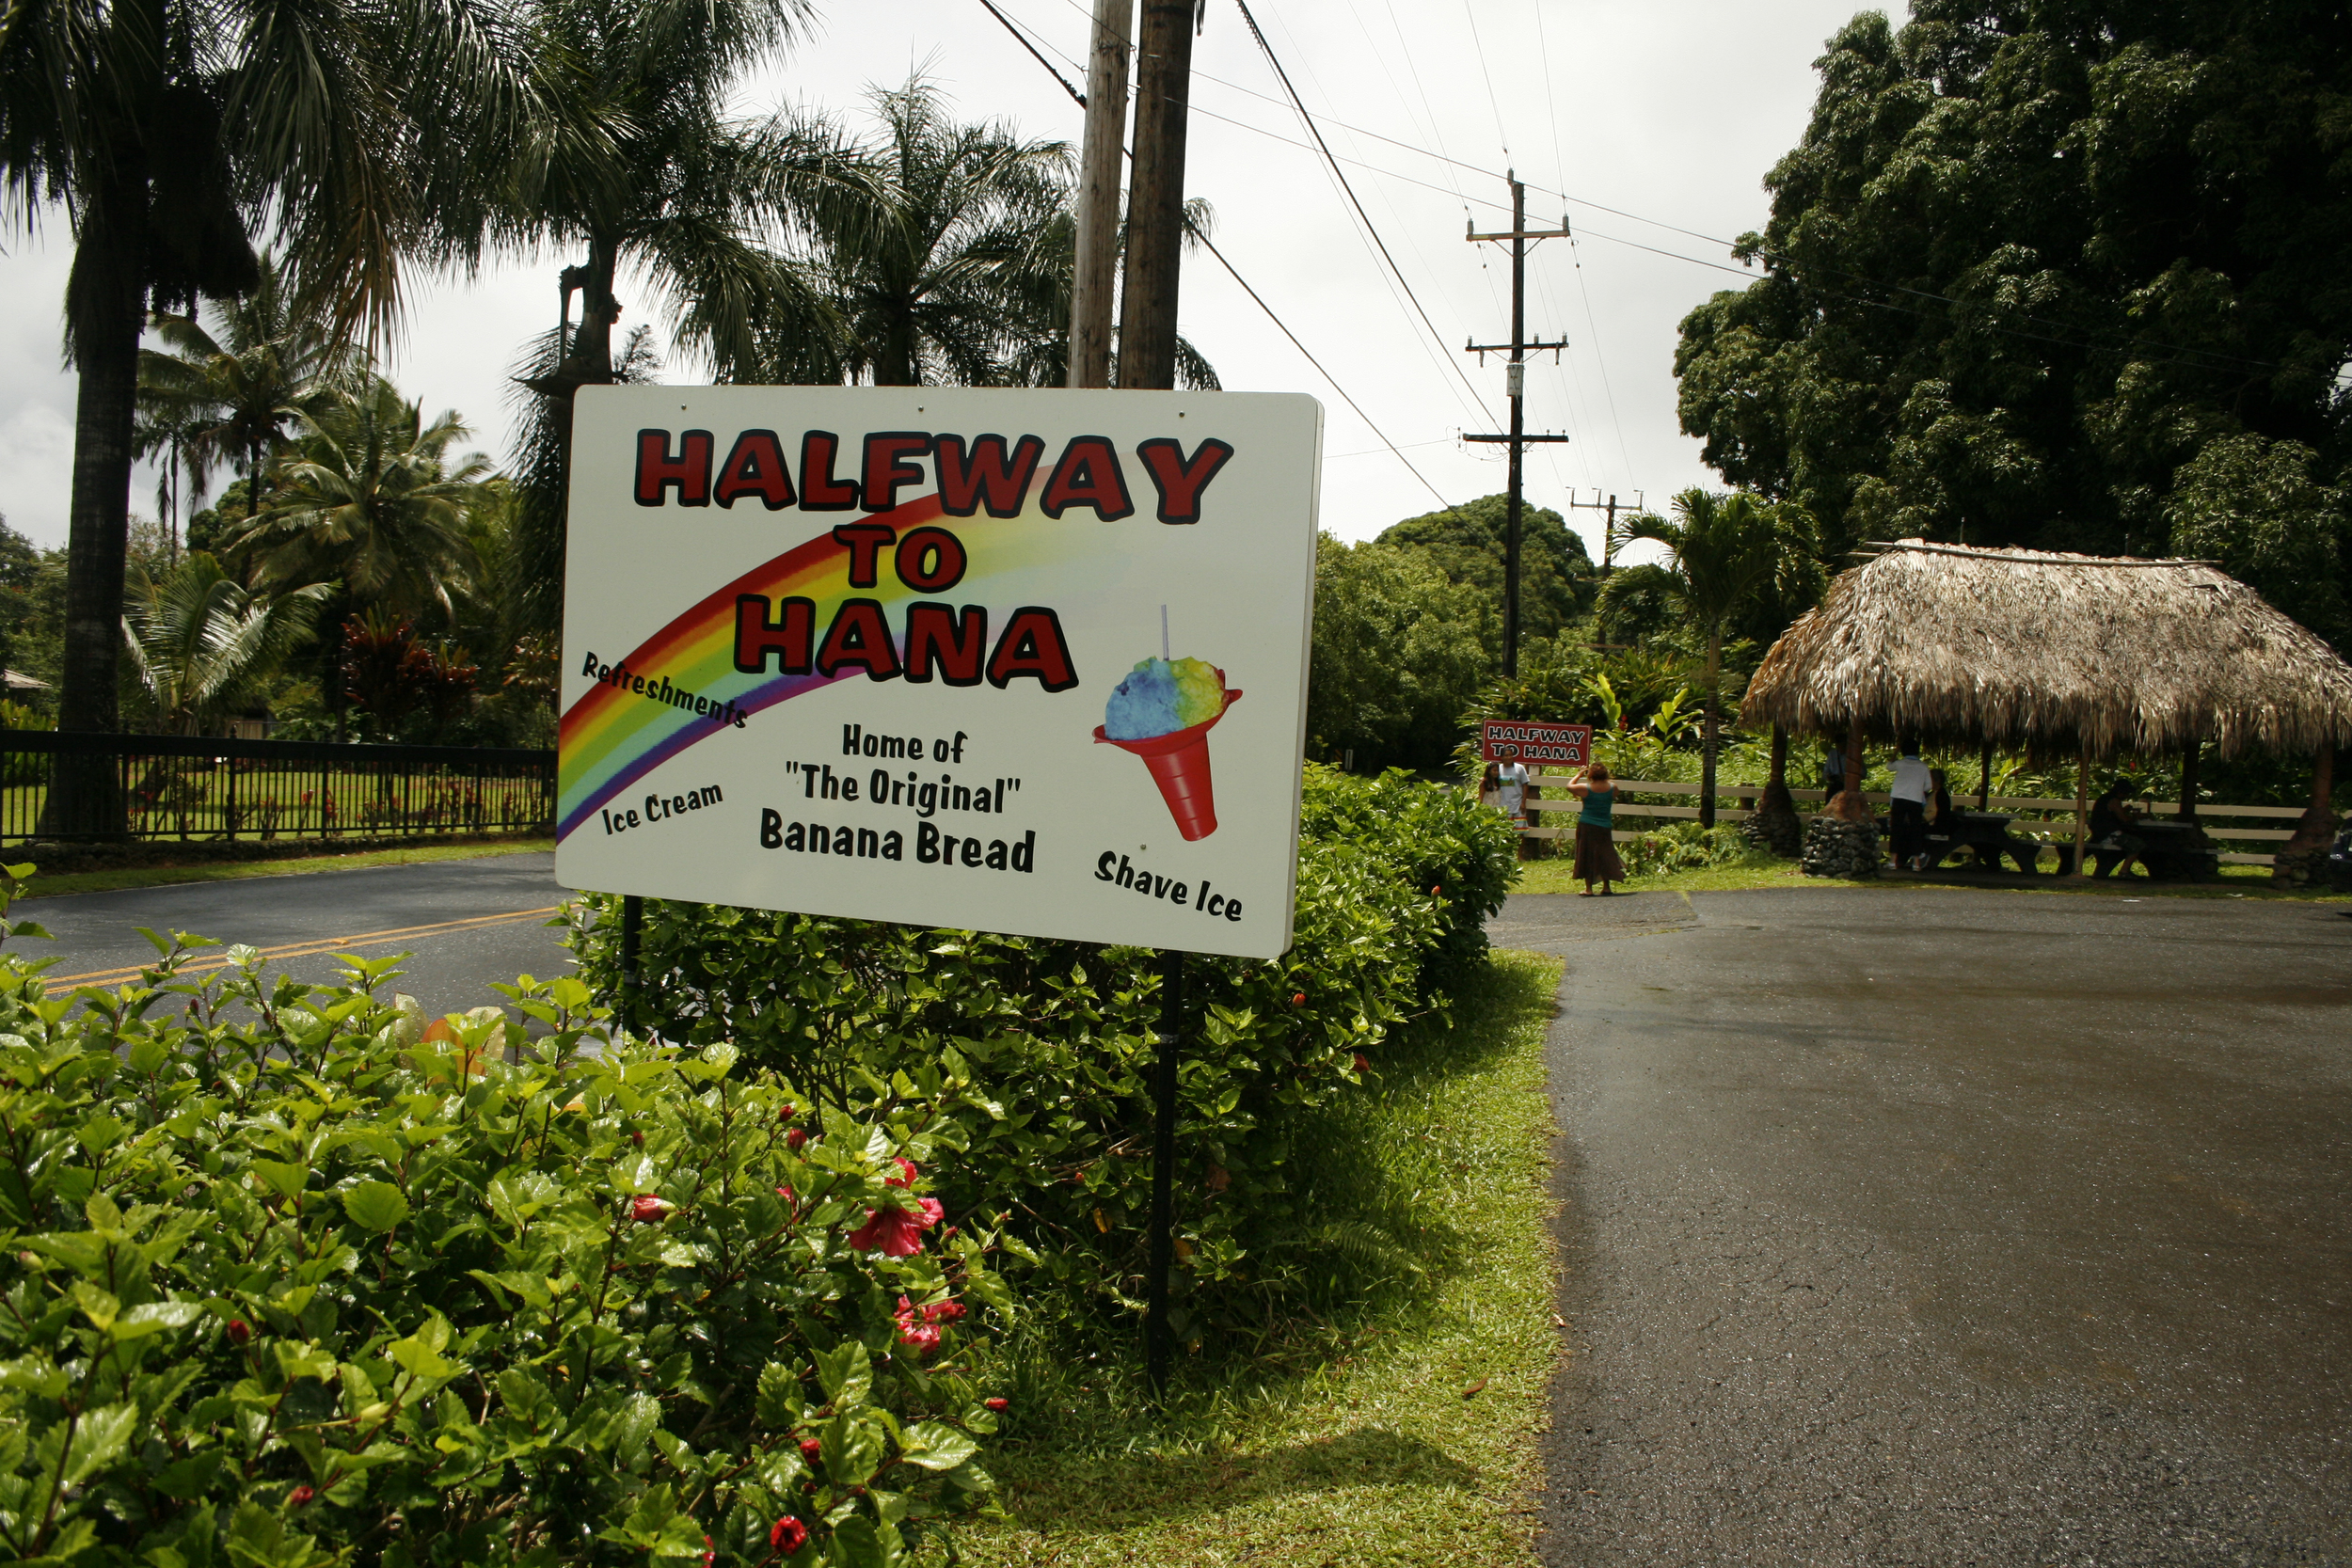 And then there was the Road to Hana. If anyone has ever heard of this adventure you absolutely must drive it yourself. There are over 600 hairpin turns and 54 one lane bridges. The sights are incredible along the way. Also, this little stop has amazing banana bread!